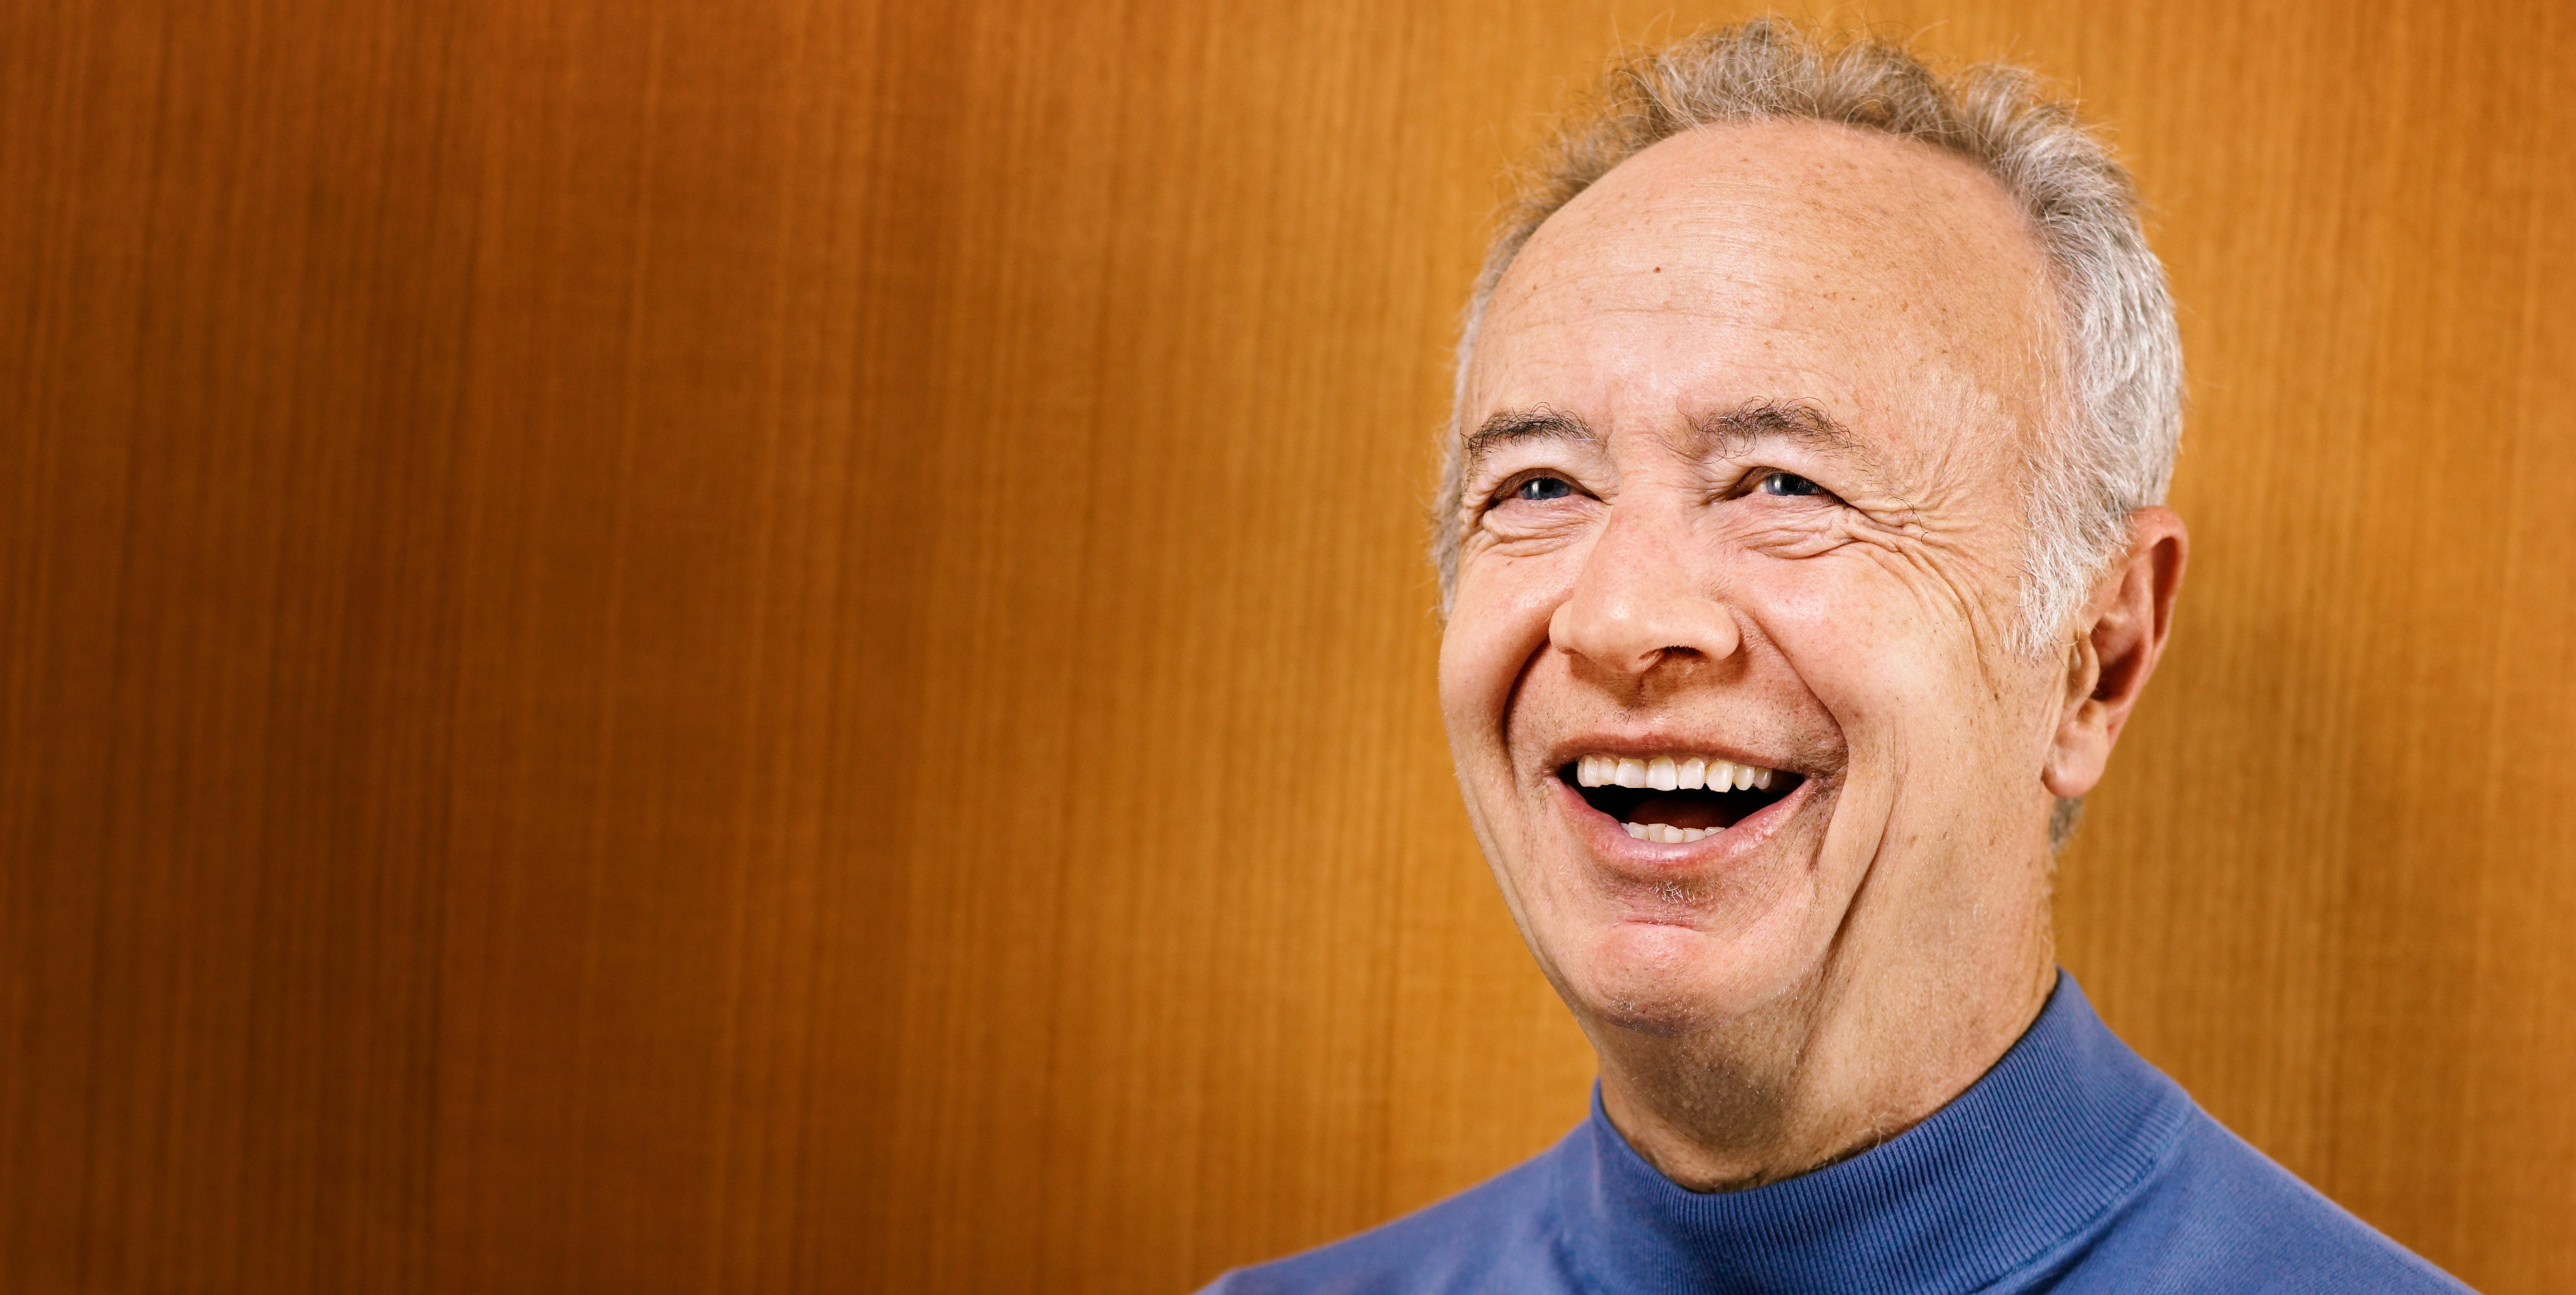 A secret call to Andy Grove, who helped Apple buy NeXT